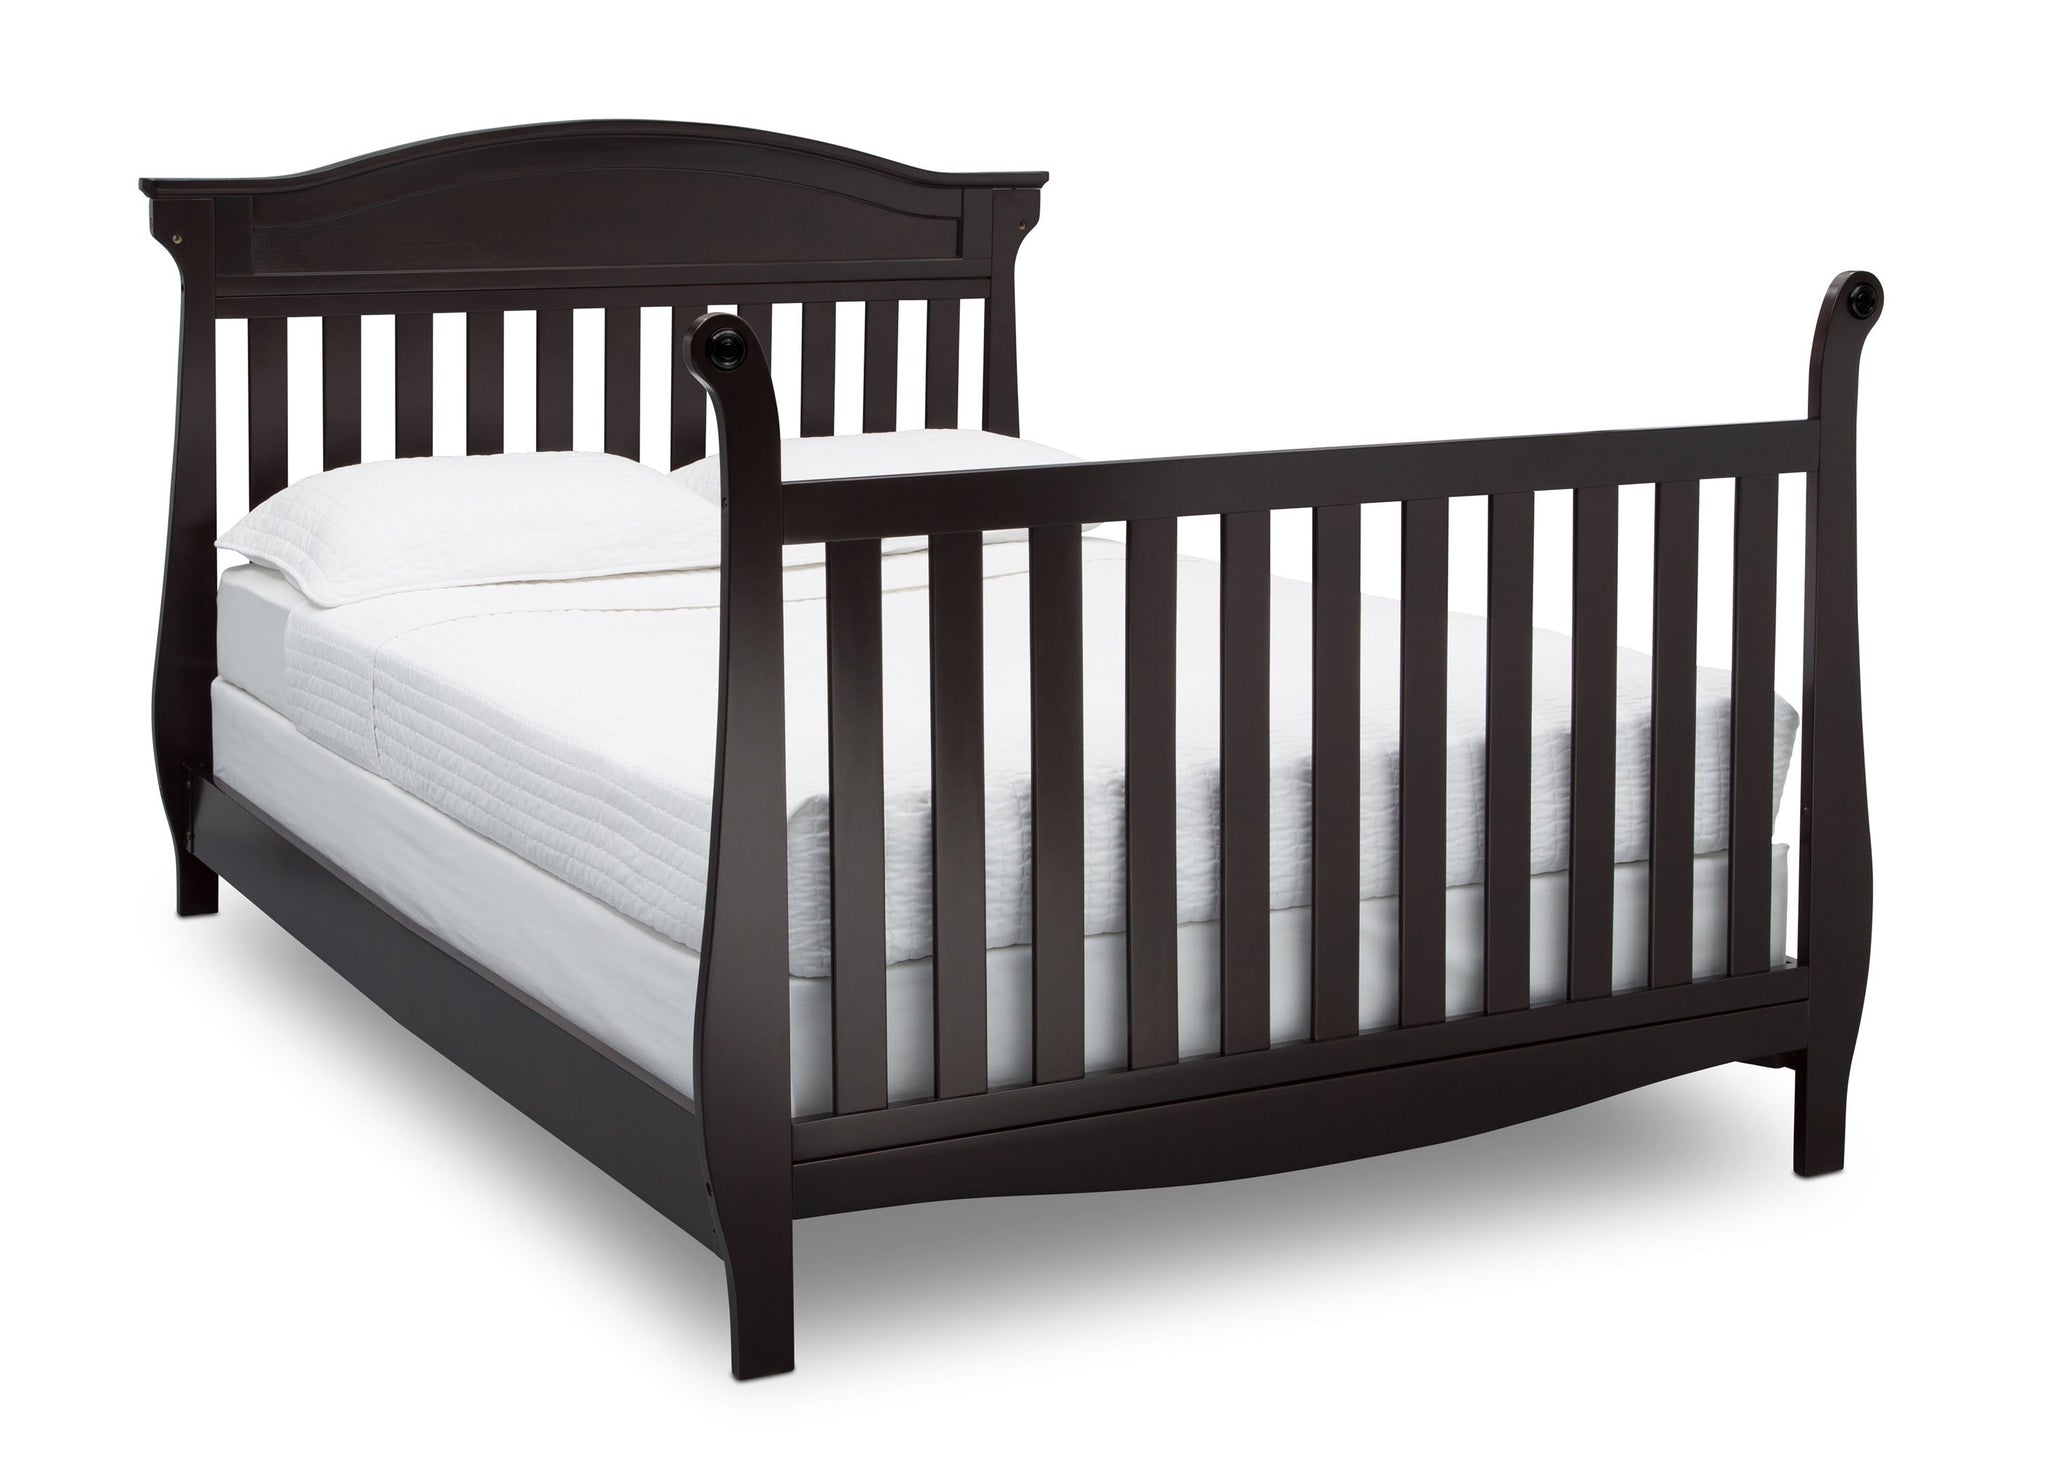 Delta Children Dark Chocolate (207) Lancaster 4-in-1 Convertible Crib (552150), Full Bed with Footboarf, c5c